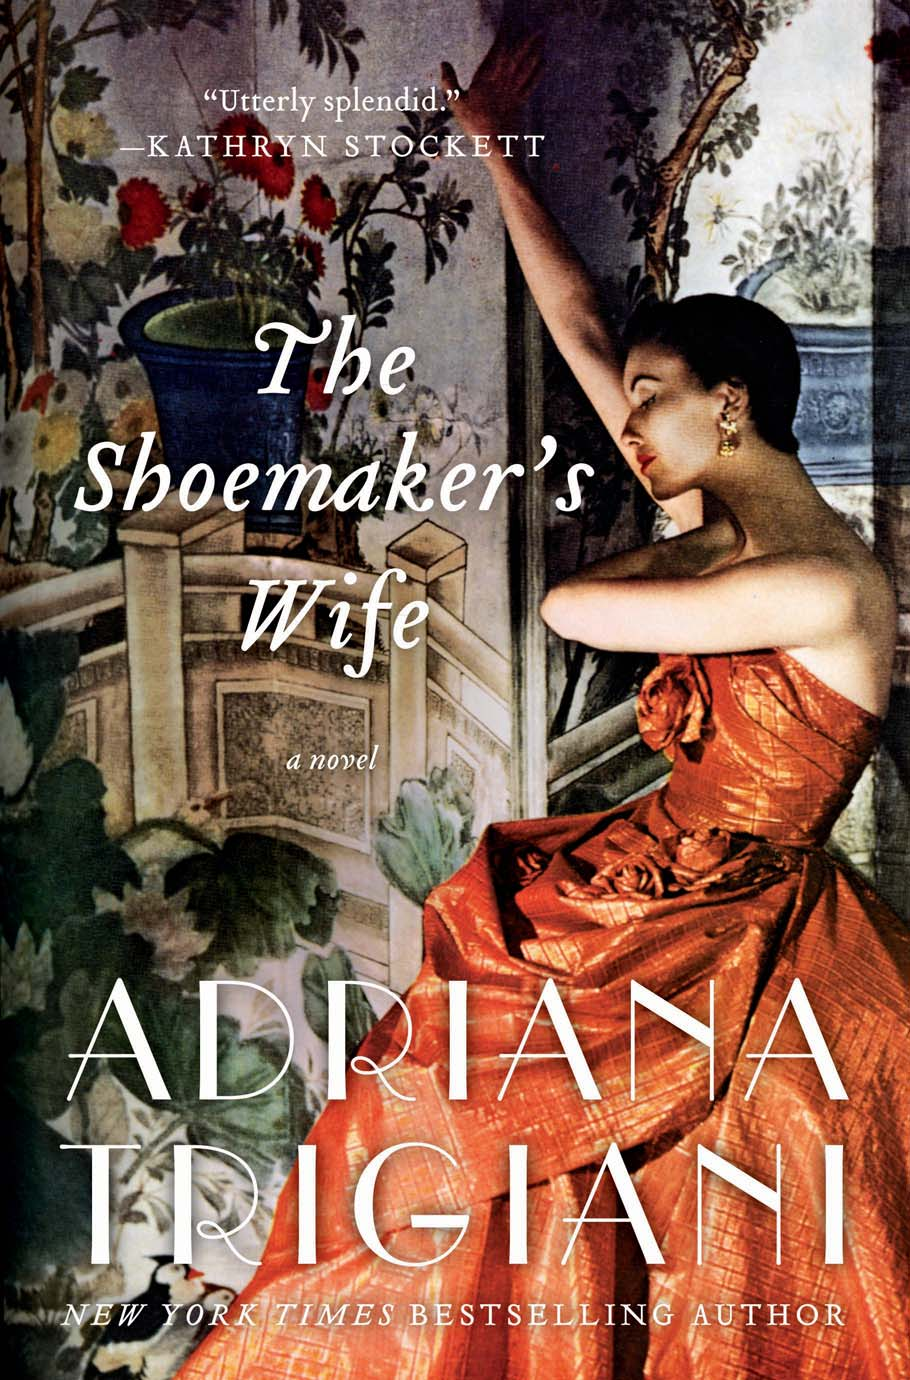 shoemaker Q&A: Adriana Trigiani, Author of The Shoemakers Wife